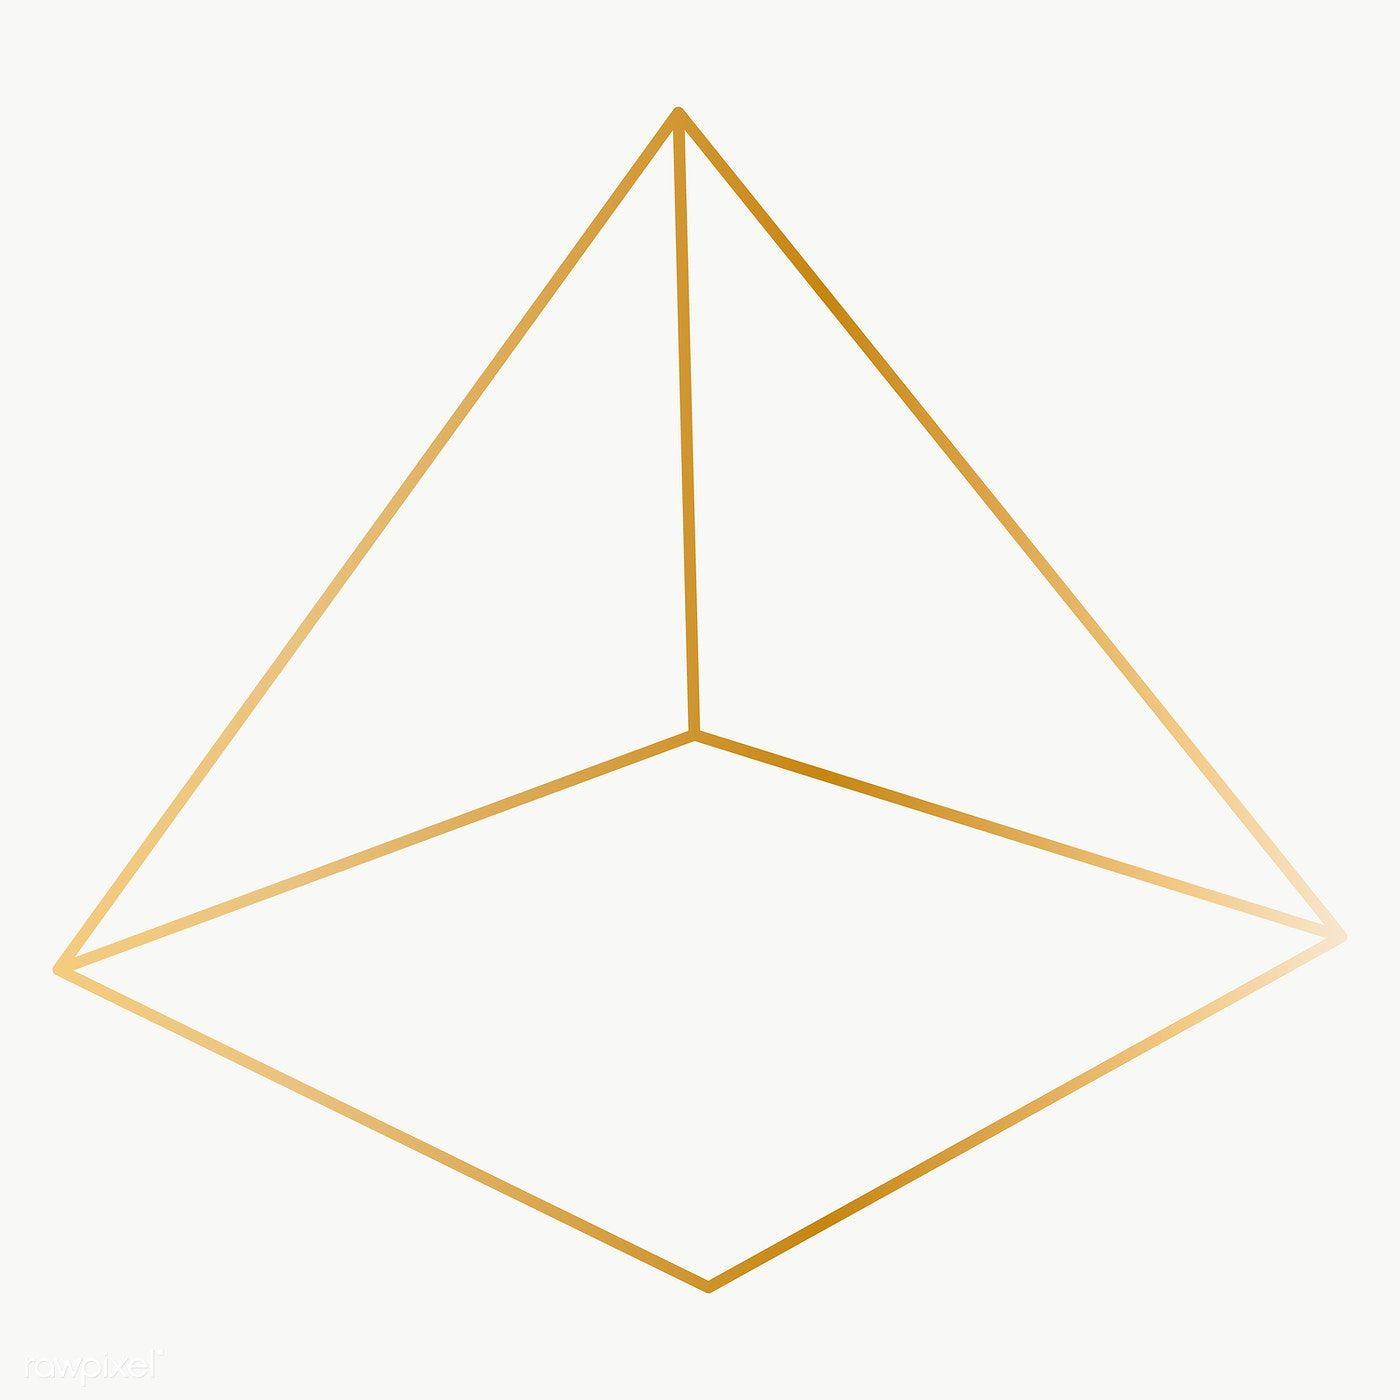 Minimal Gold Pyramid Shape Transparent Png Free Image By Rawpixel Com Katie Pyramids Vector Background Pattern Background Design Vector